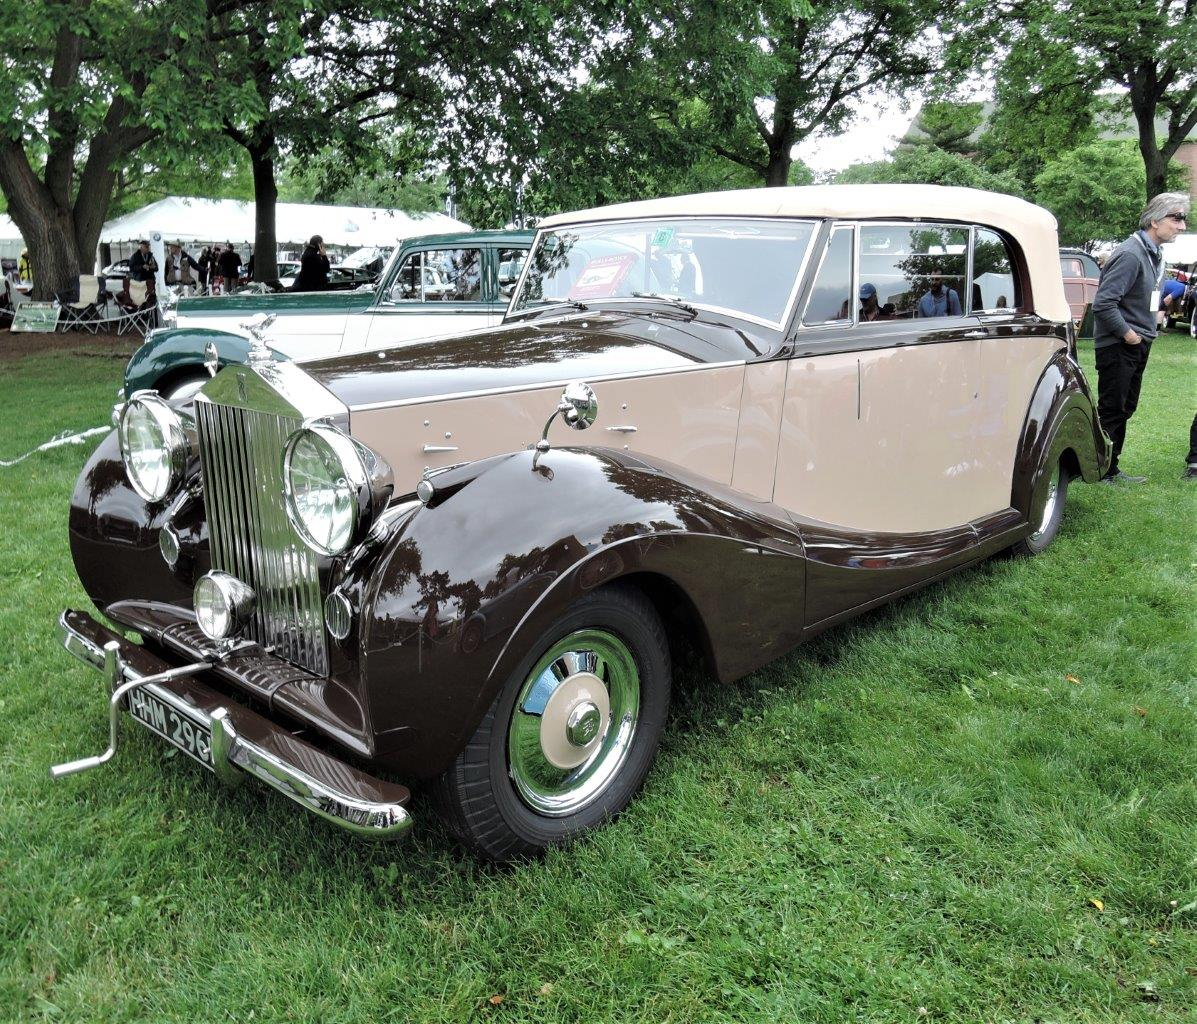 tan/brown 1947 Rolls-Royce Silver Wraith - 2018 Greenwich Concours International